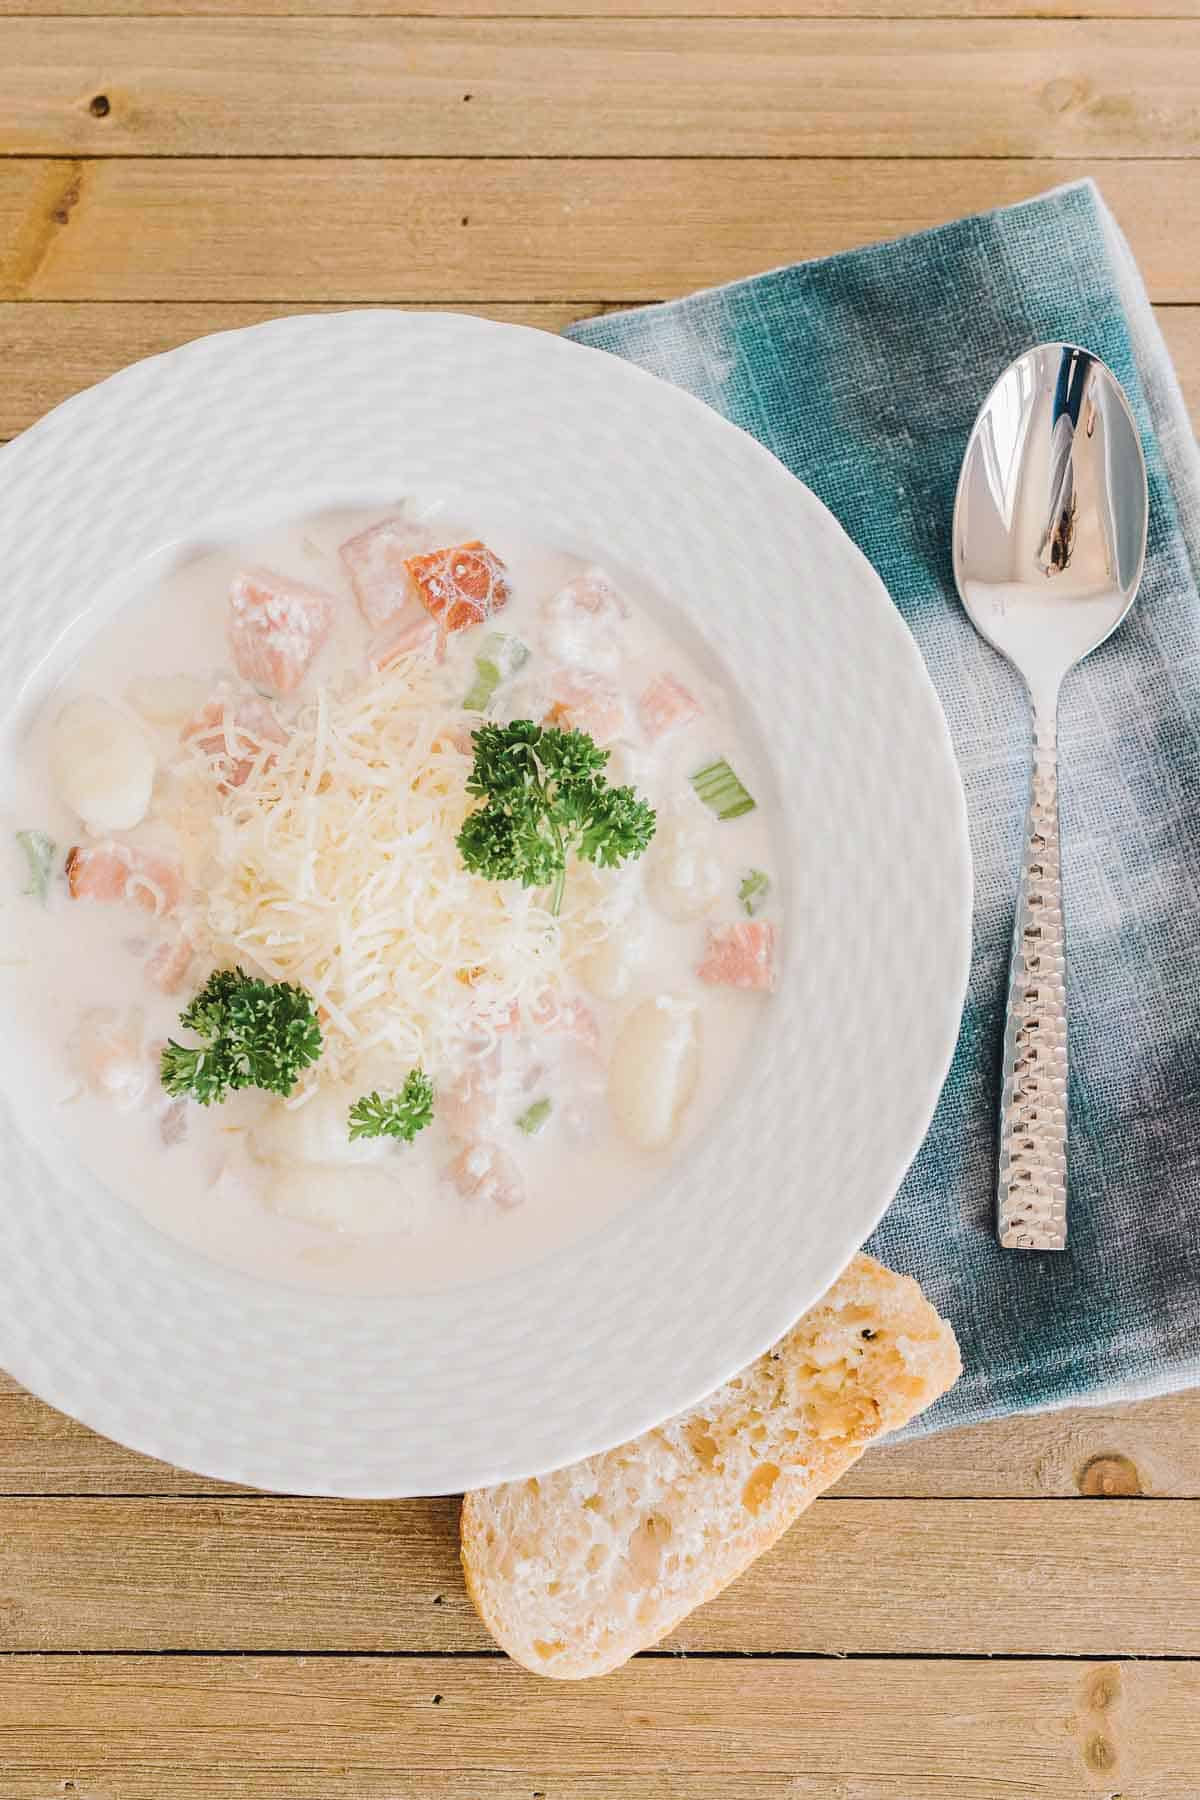 I adore the decadent flavors of chicken cordon bleu, but the work to make it? Not so much. You know what else I adore? Soup. You see where this is going... Chicken Cordon Bleu Soup.